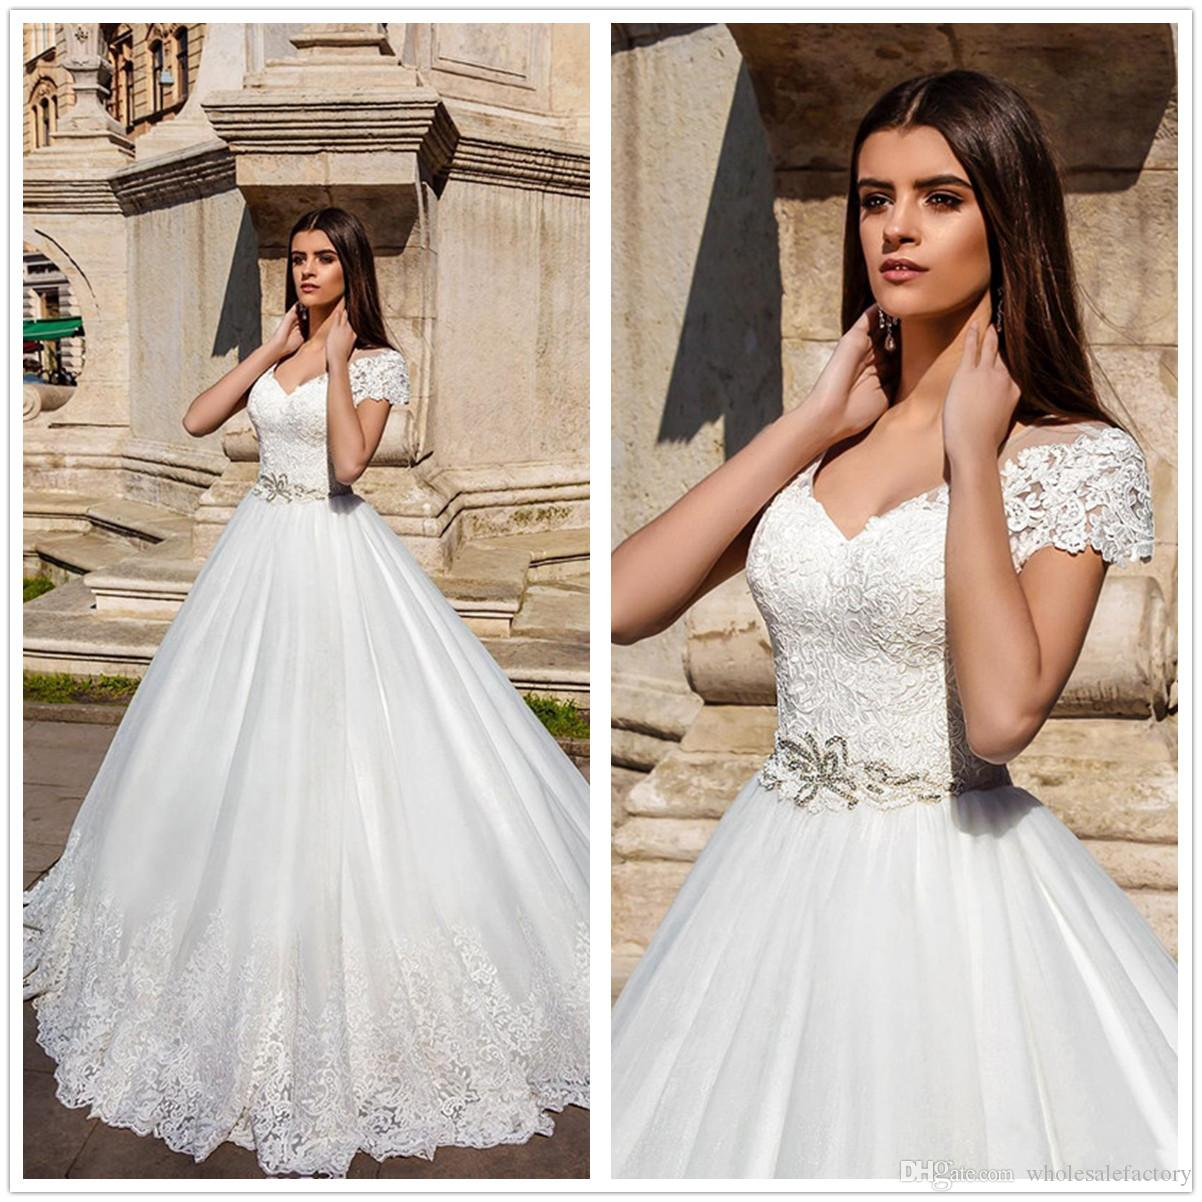 Discount 2018 Sheer Short Sleeves Lace Wedding Dresses Tulle Hollow Back Beaded Sash Floor Length Summer Beach Bohemian Outdoor Bridal Gown